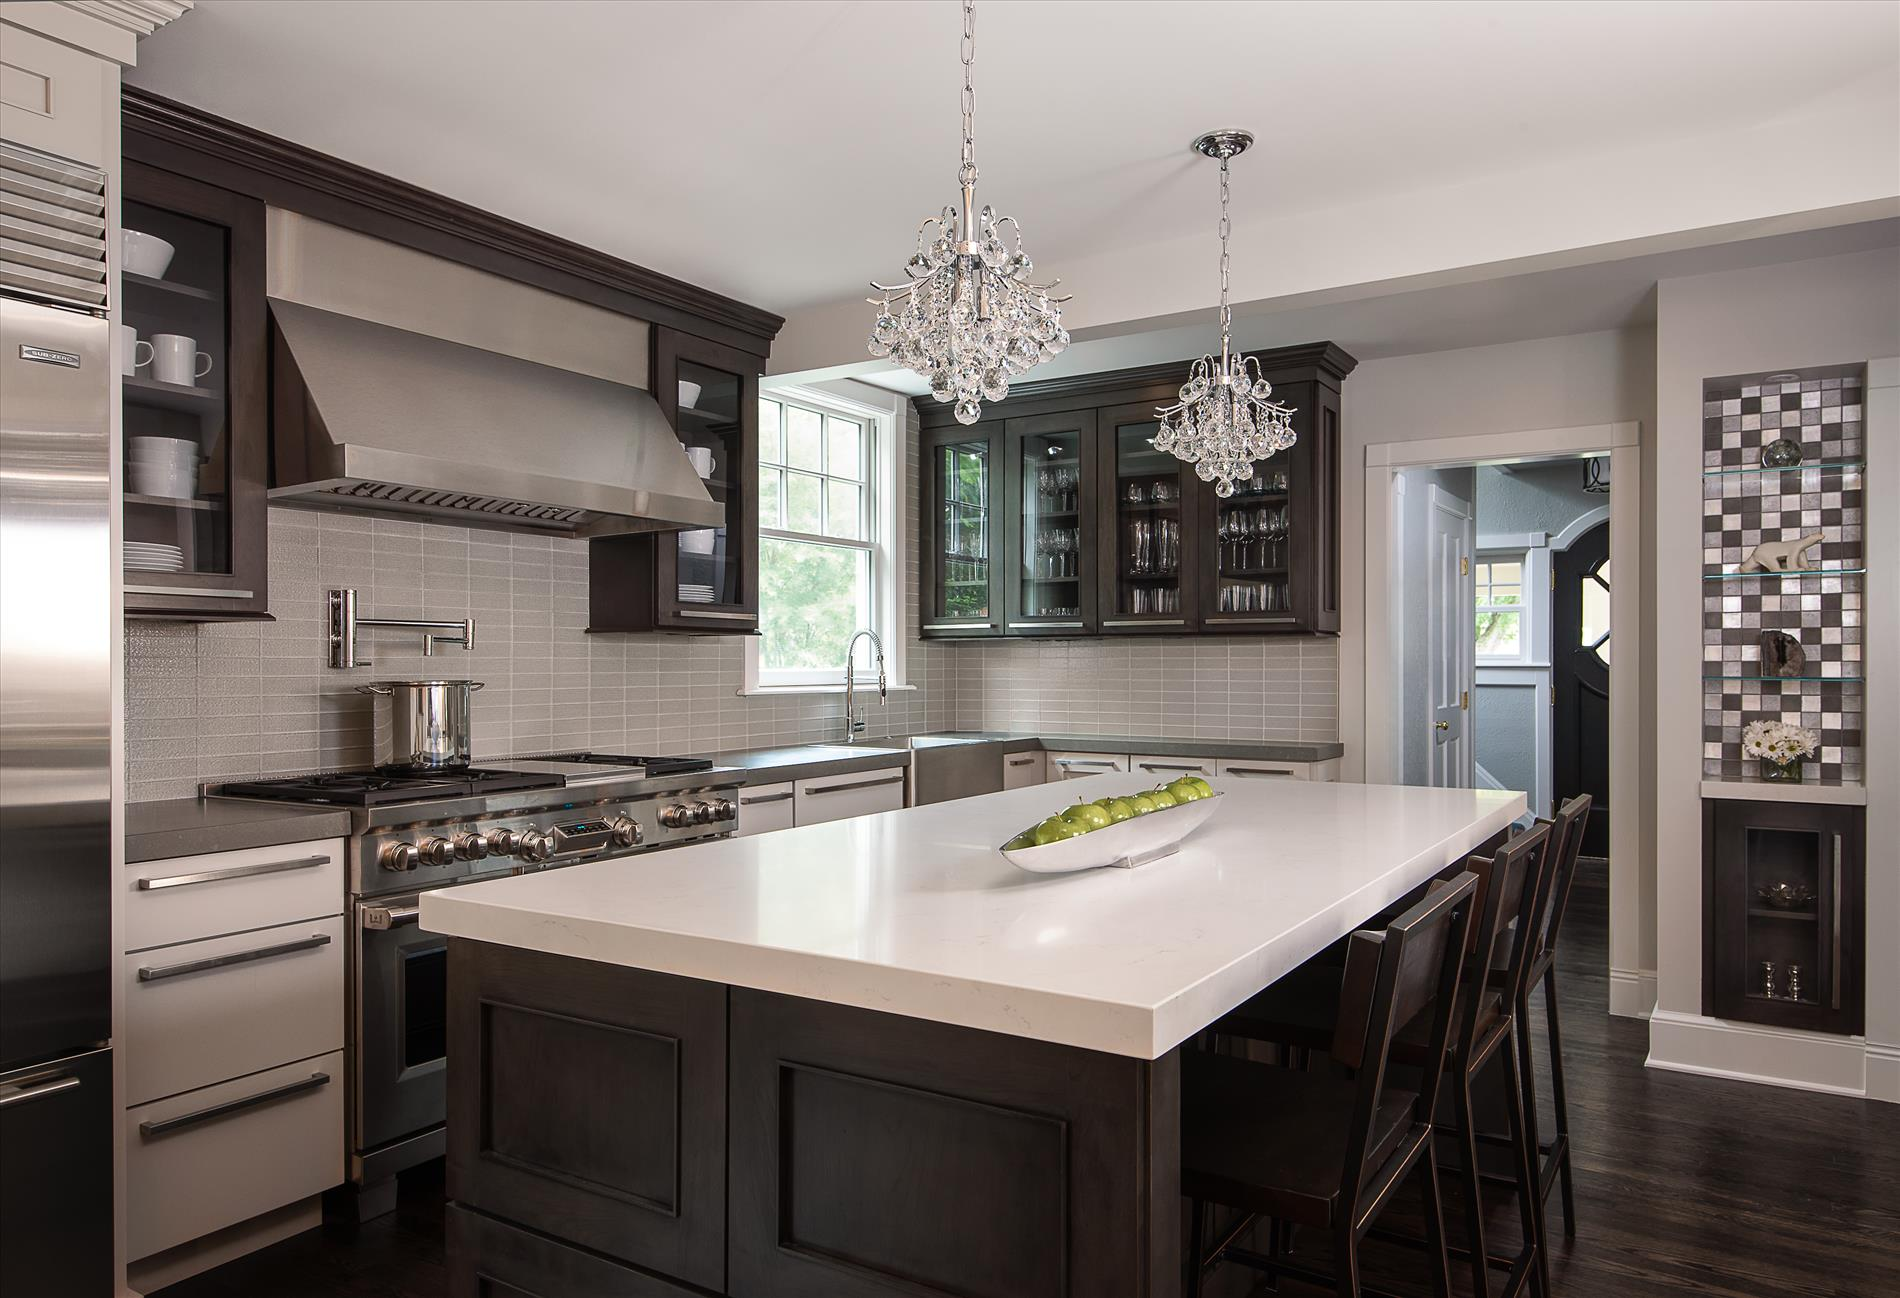 We Congratulate Christine Ramaekers Of Mainstreet Design Build In Birmingham MI For Her Kitchen Which Was Ranked As The Number One